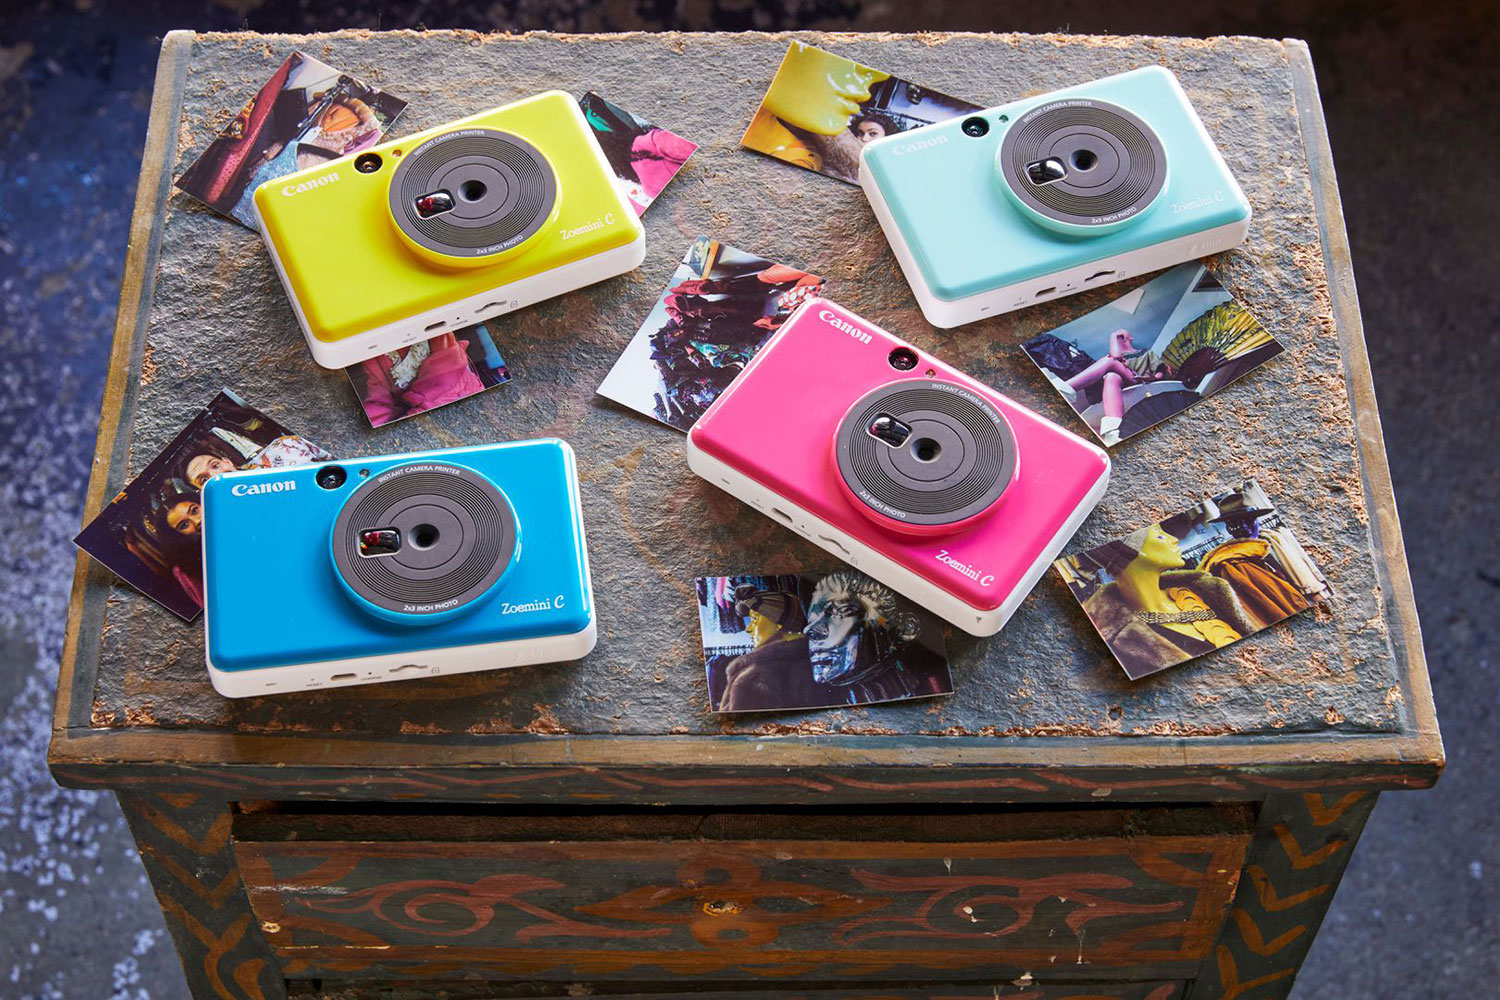 NOW IN STOCK: Canon Zoemini Instant Cameras Now Available for Hire